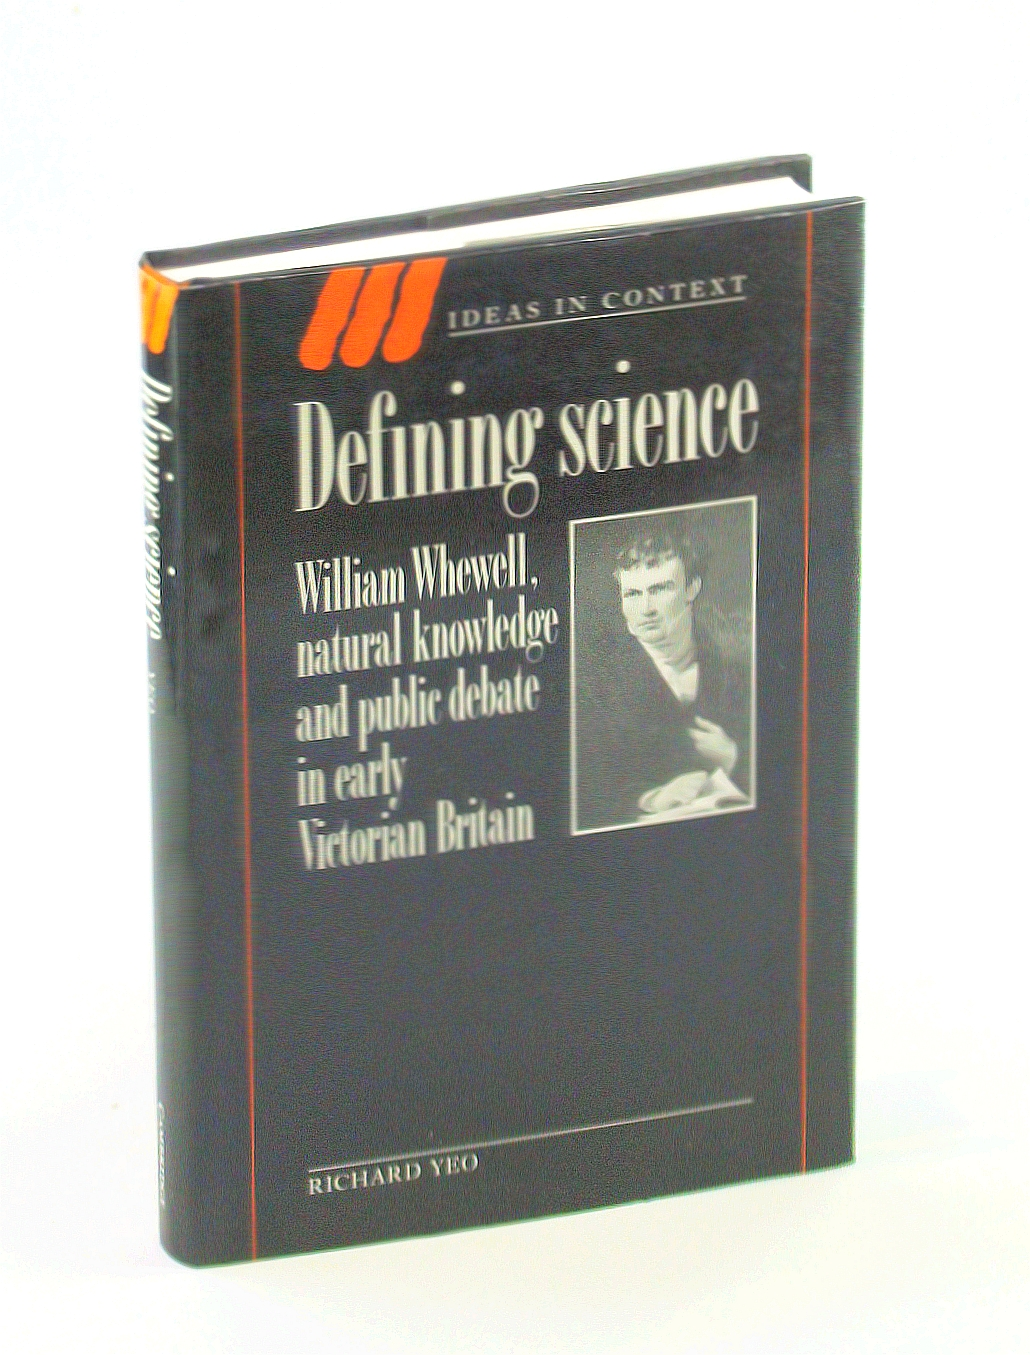 Image for Defining Science: William Whewell, Natural Knowledge and Public Debate in Early Victorian Britain (Ideas in Context)